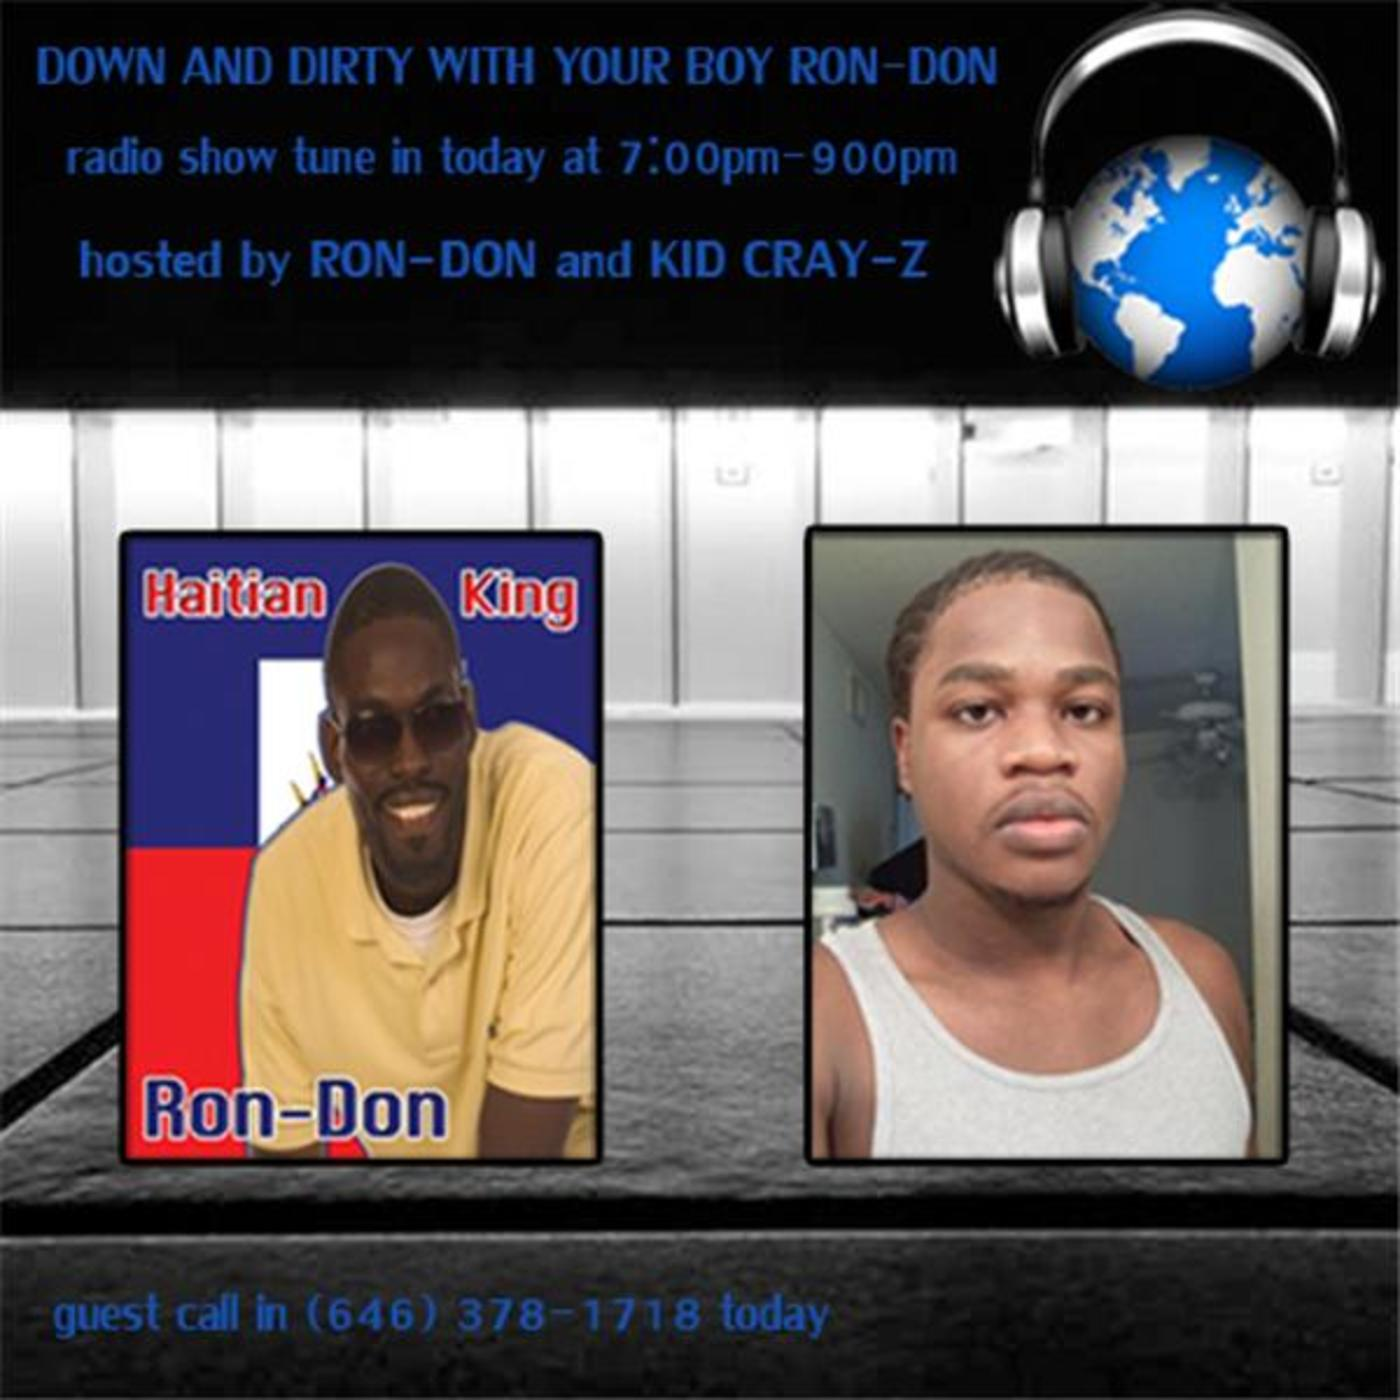 Down And Dirty With Your Boy Ron-Don